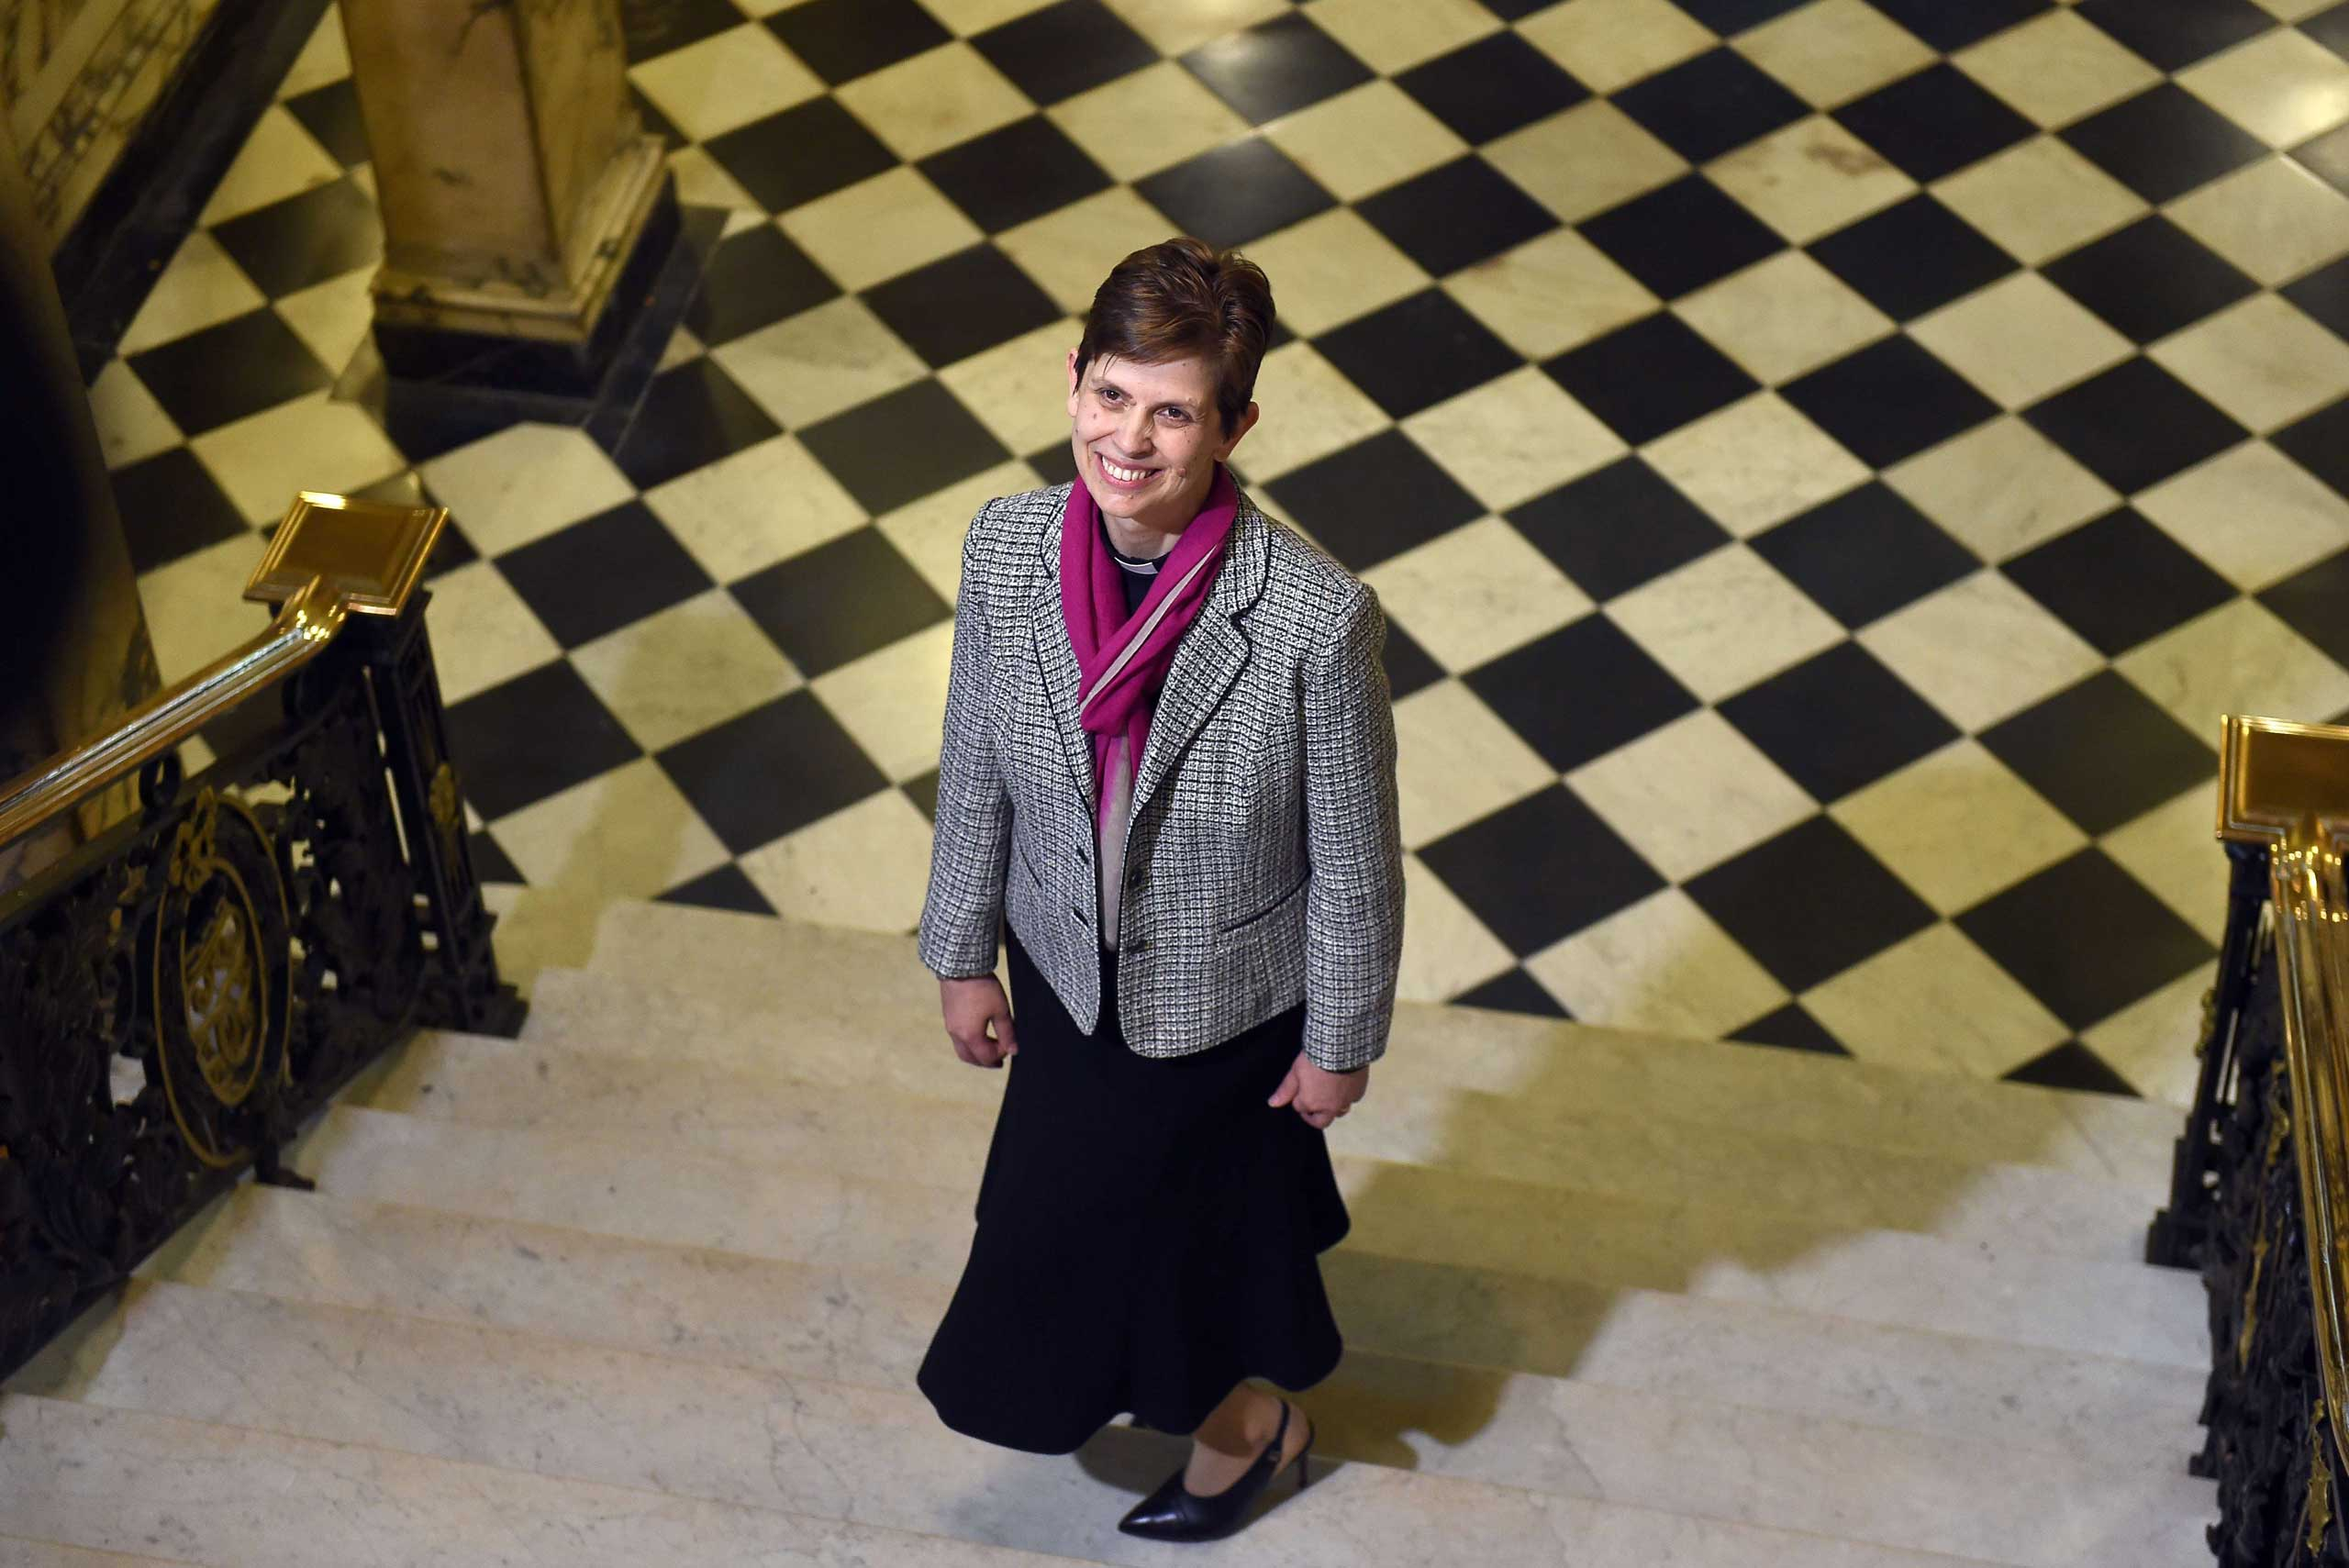 Reverend Libby Lane poses for pictures during a photo call following the announcement naming her first woman bishop by The Church of England, after a historic change in its rules, in Stockport, northwest England, on Dec. 17, 2014.